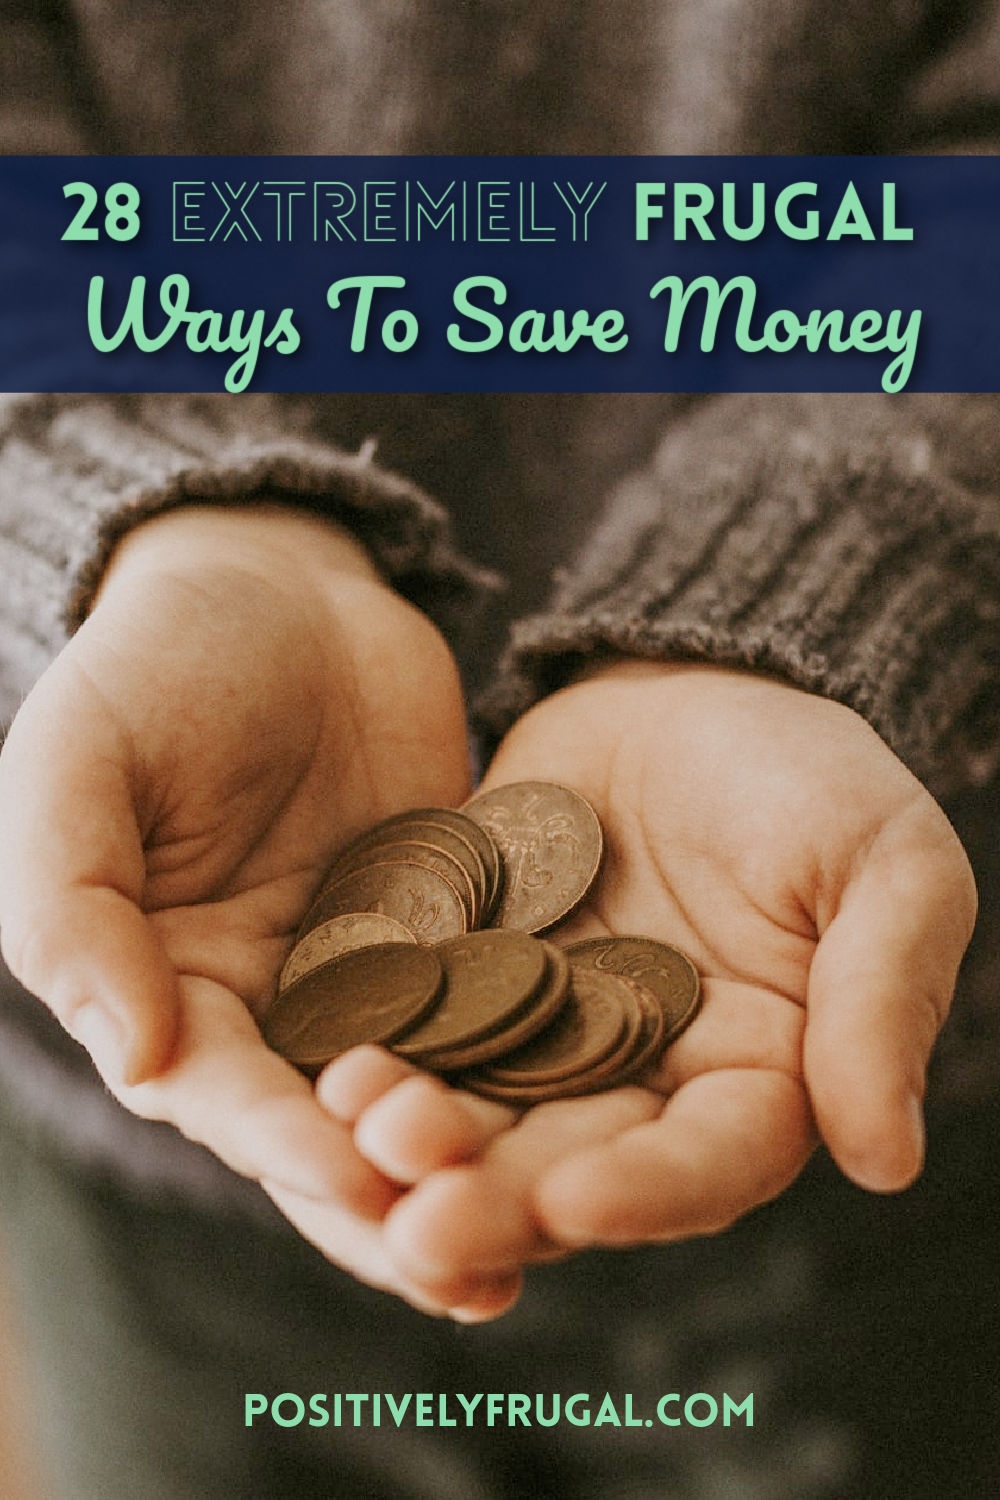 28 Extremely Frugal Ways To Save Money by PositivelyFrugal.com